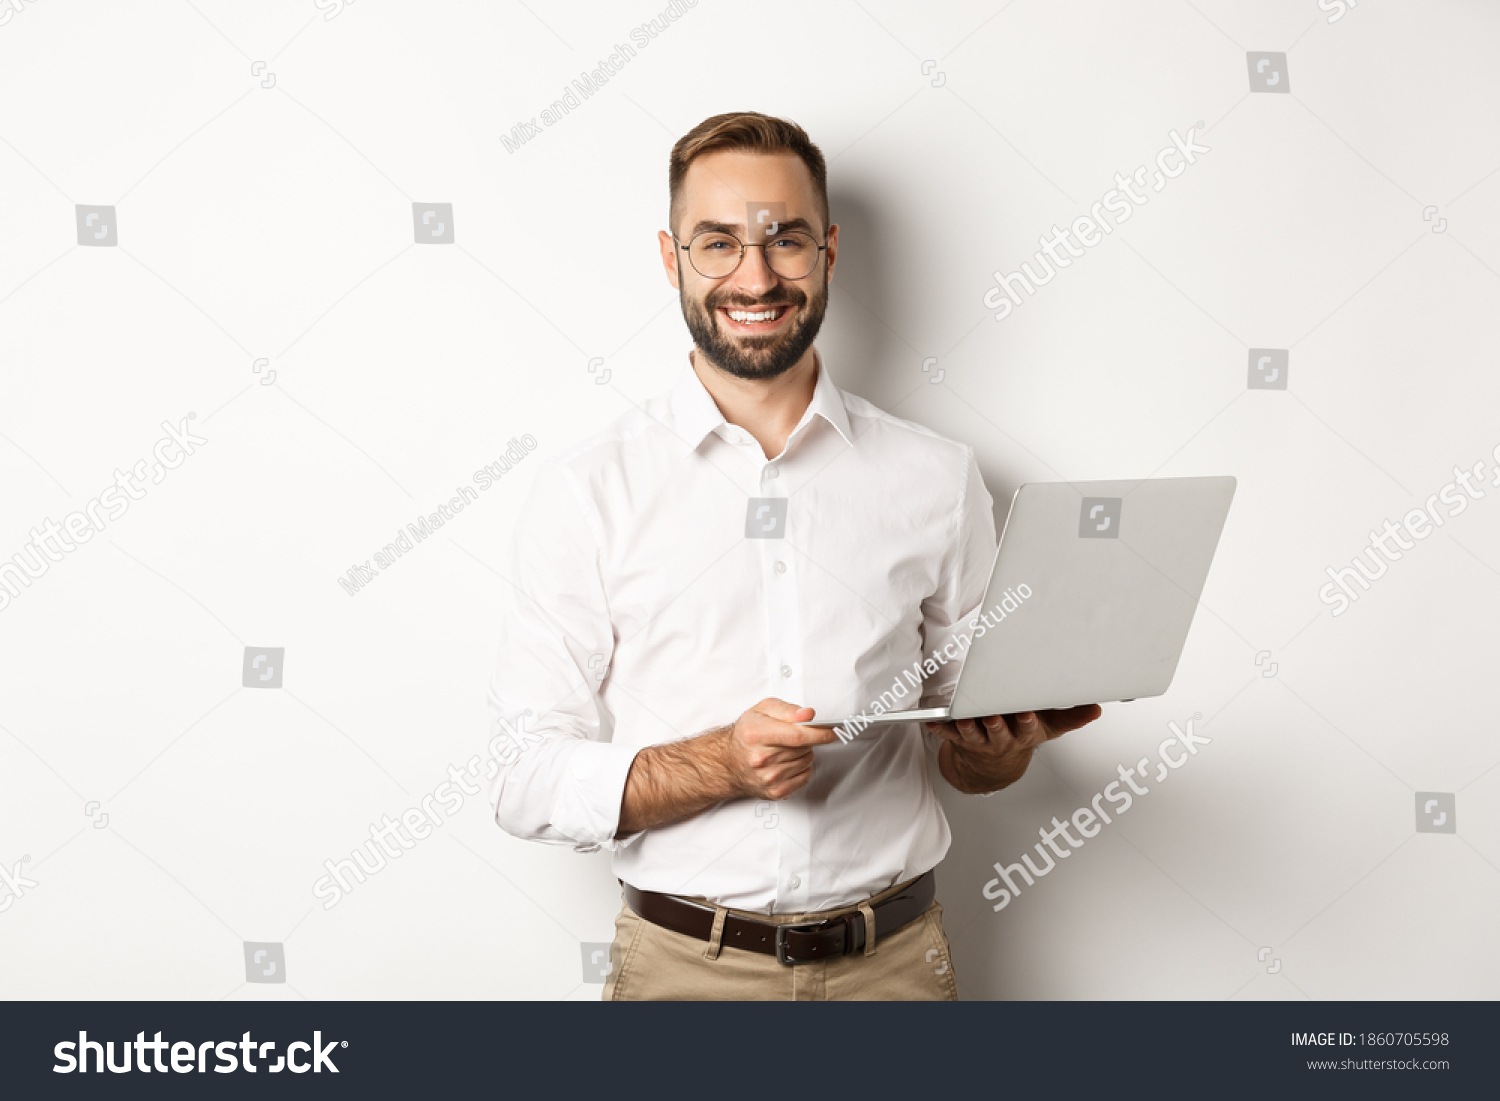 Business. Sucessful businessman working with laptop, using computer and smiling, standing over white background #1860705598